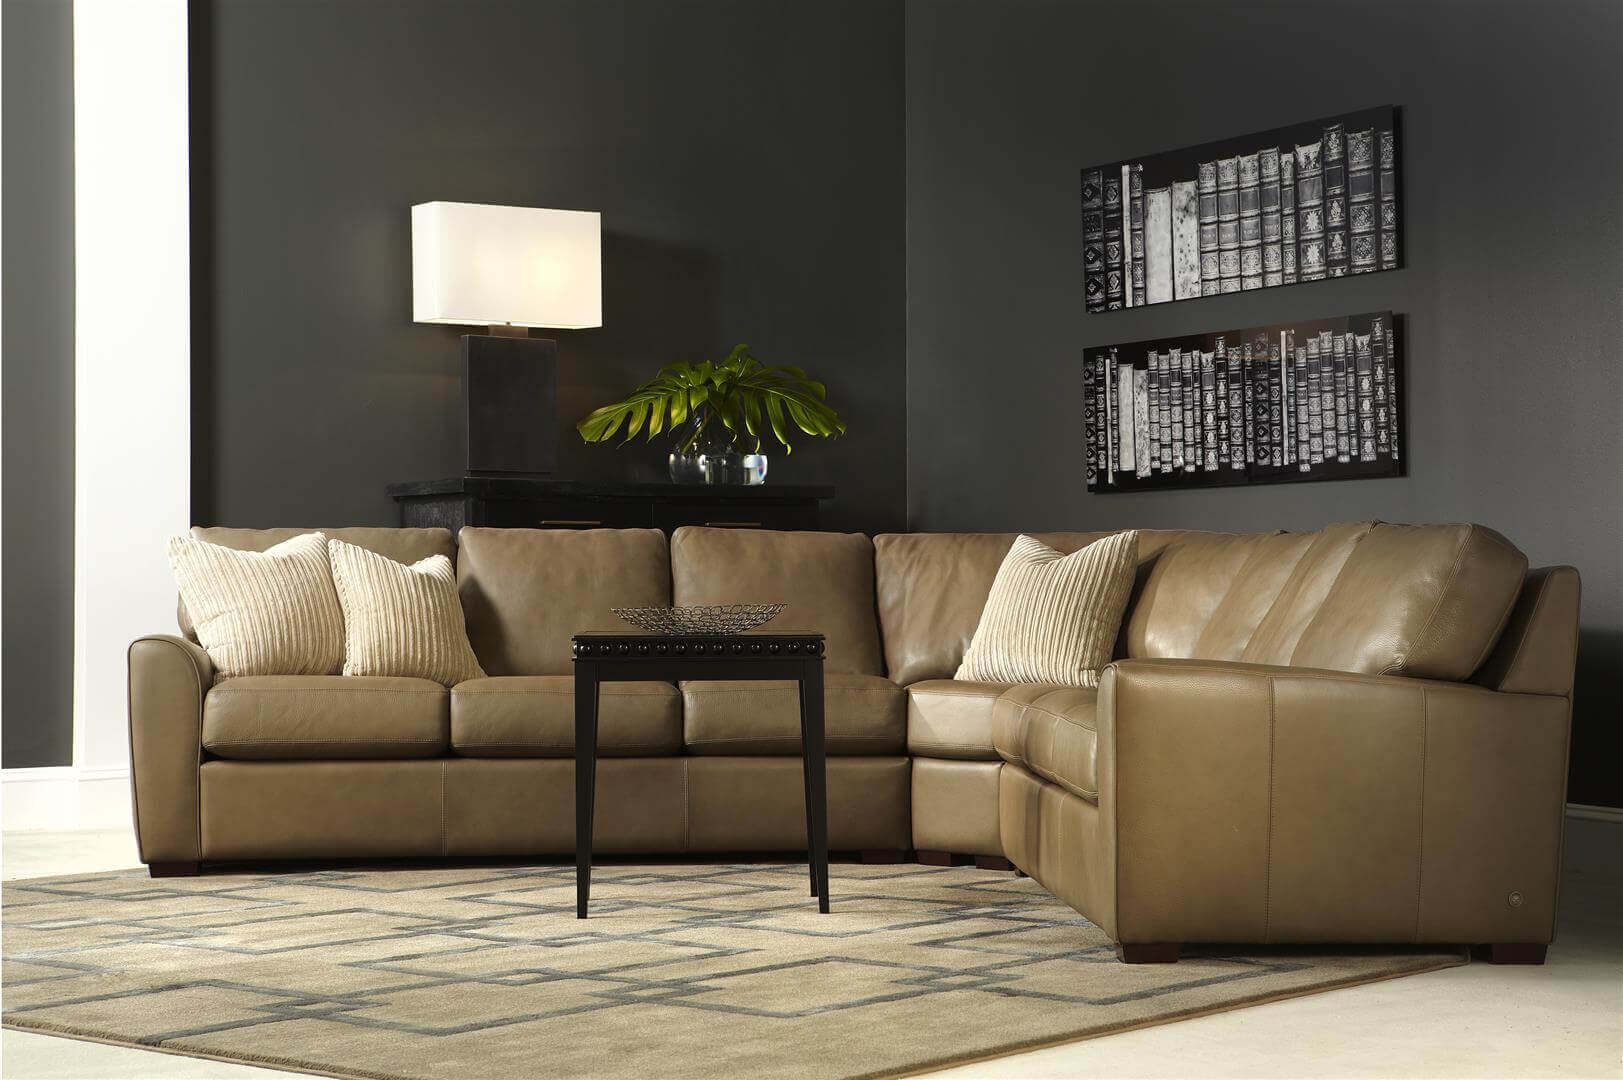 KAden Sectional |by Design Des Moines